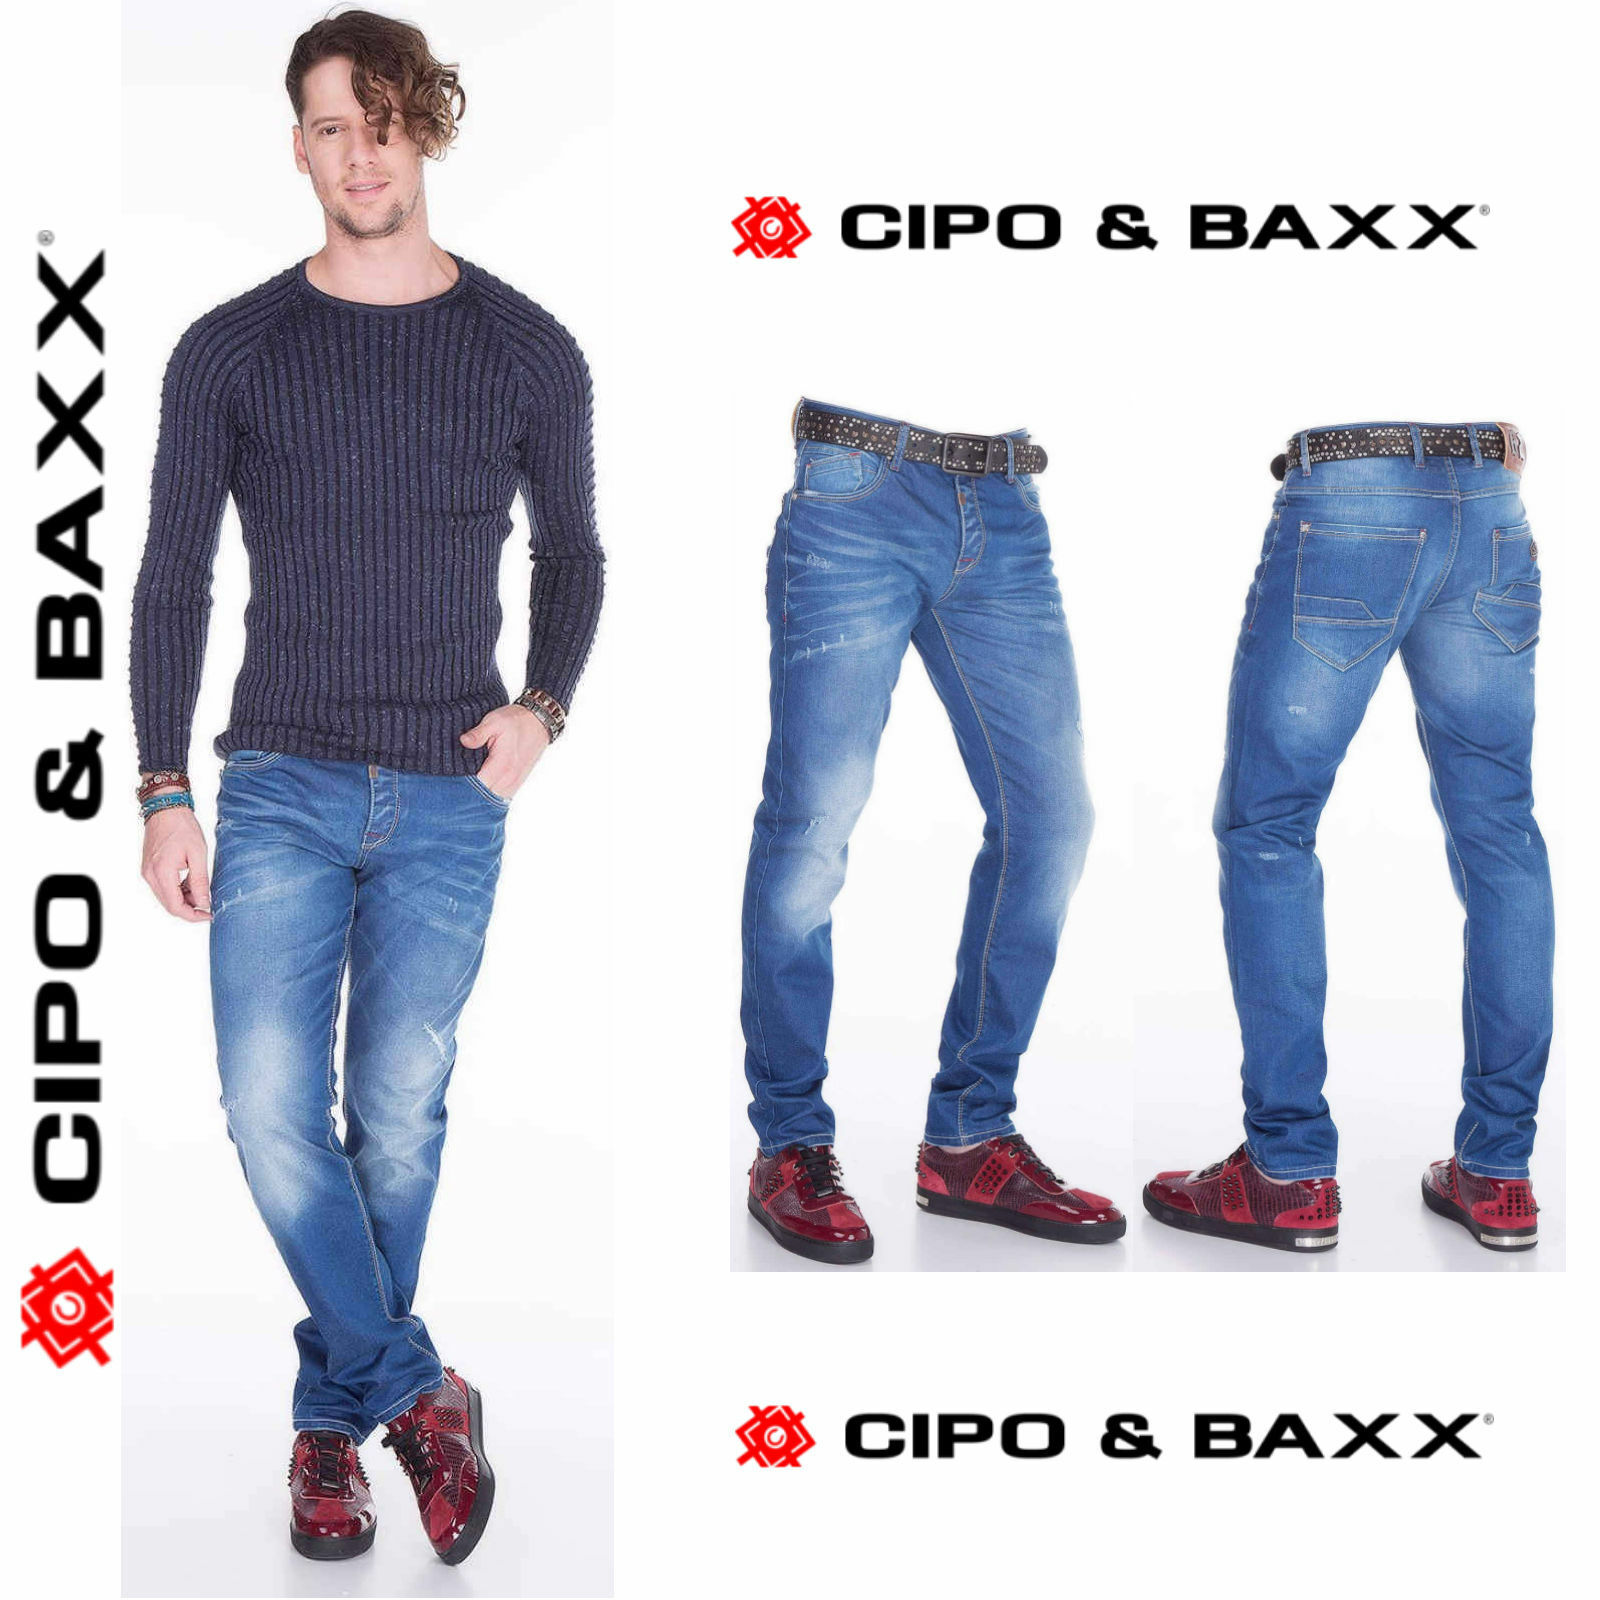 Cipo & Baxx Jeans Uomo cd386 Nuovo Pantaloni Slim fit Stretto Gamba Denim Stretch